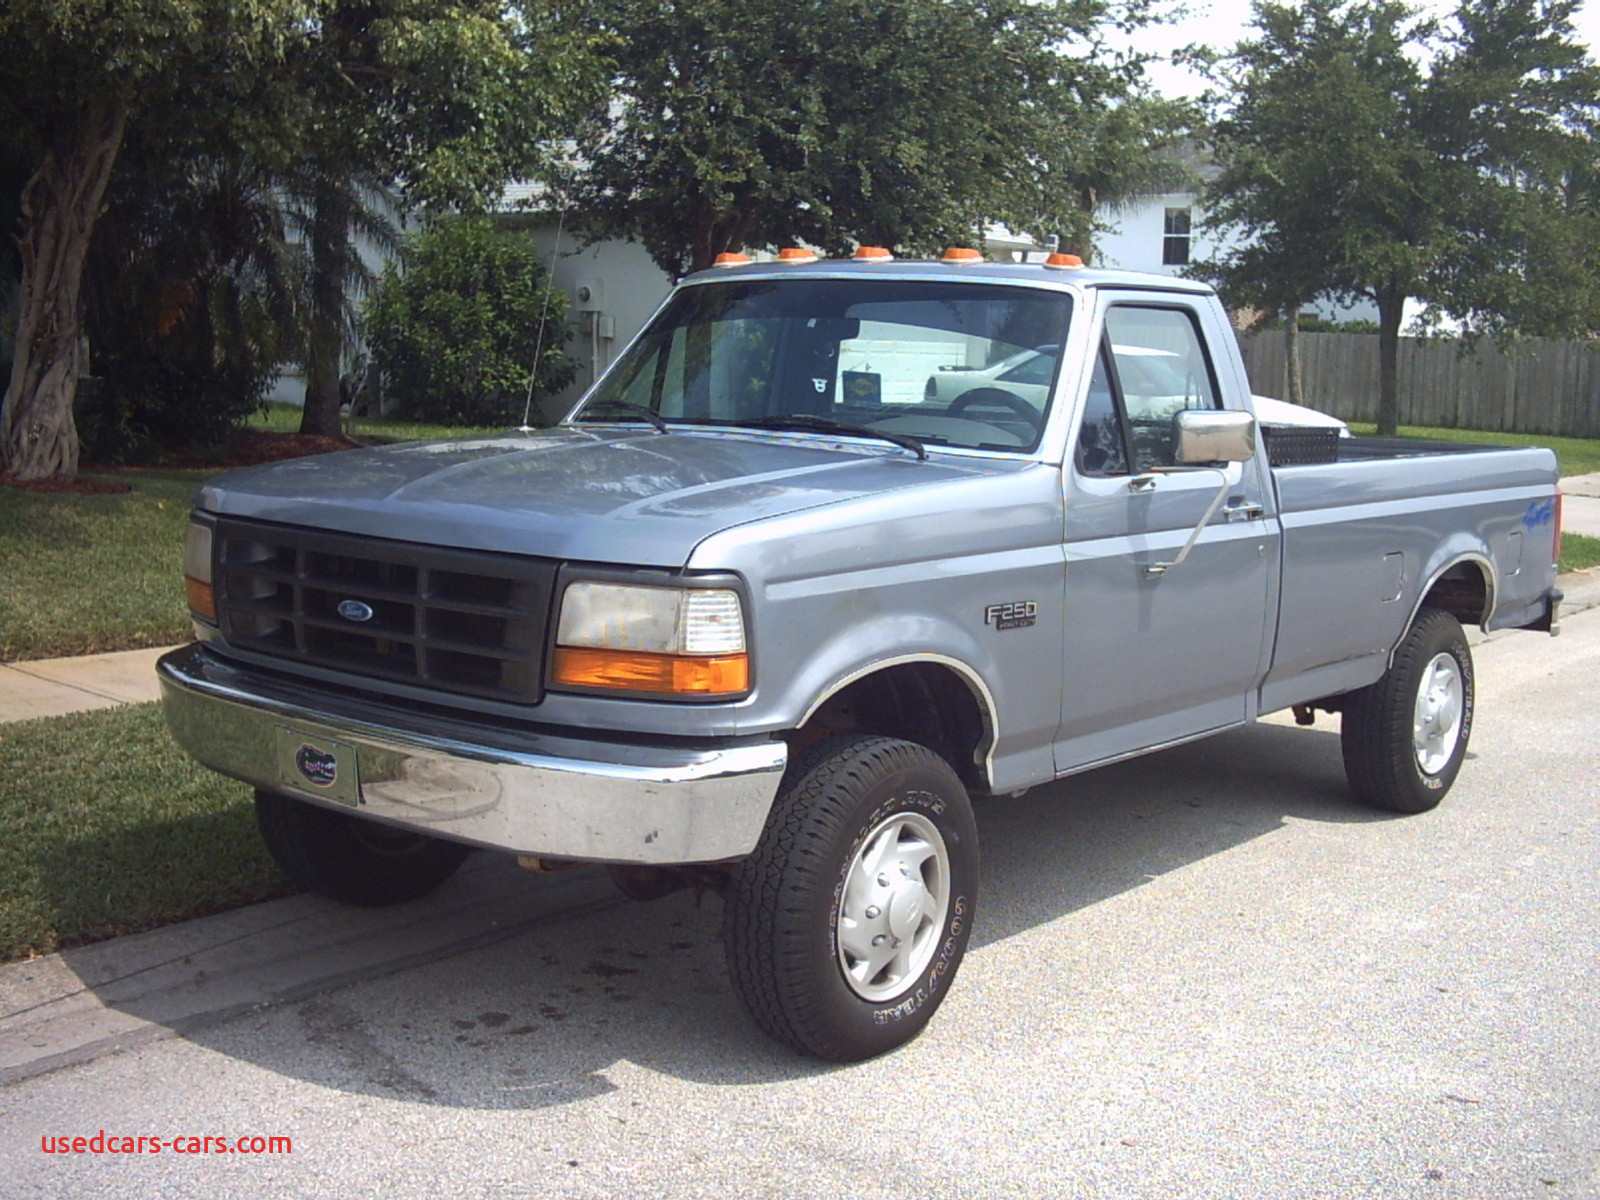 1997 ford f 250 overview c5514